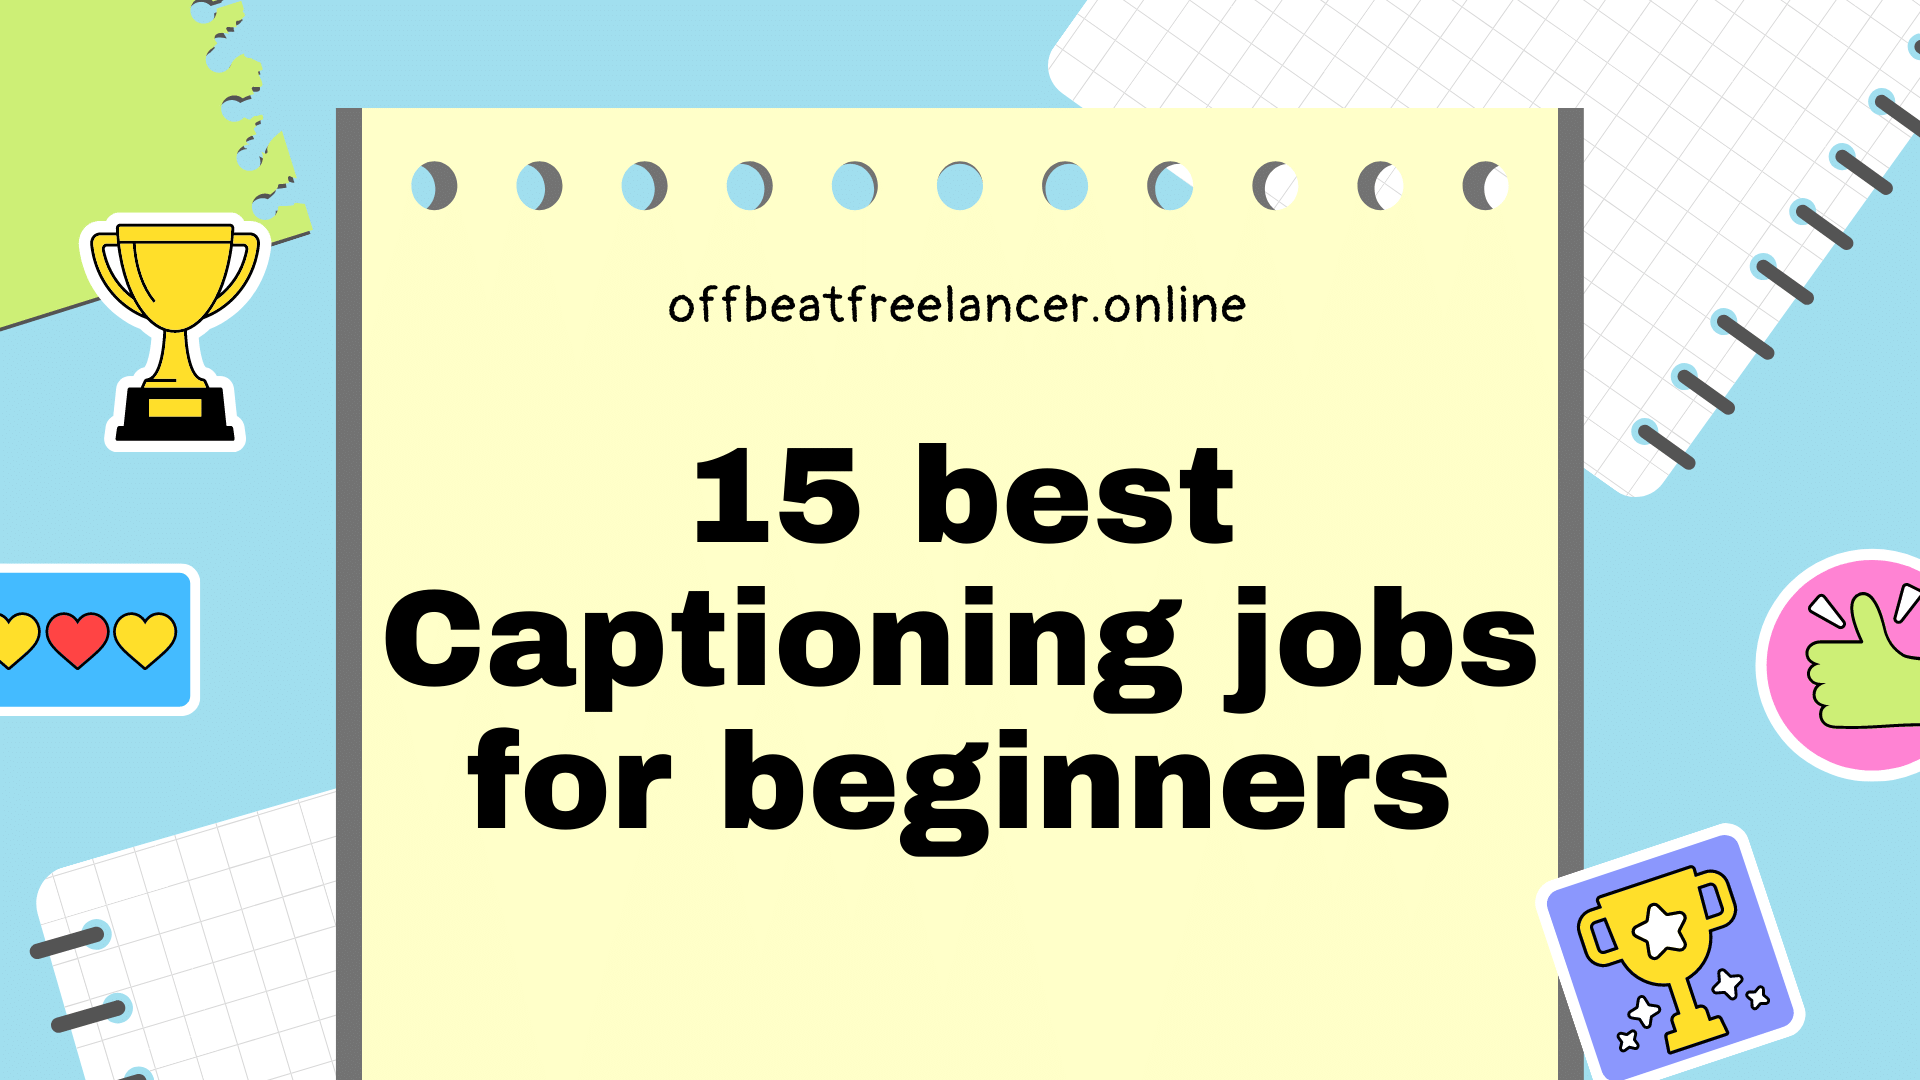 Captioning jobs for beginners